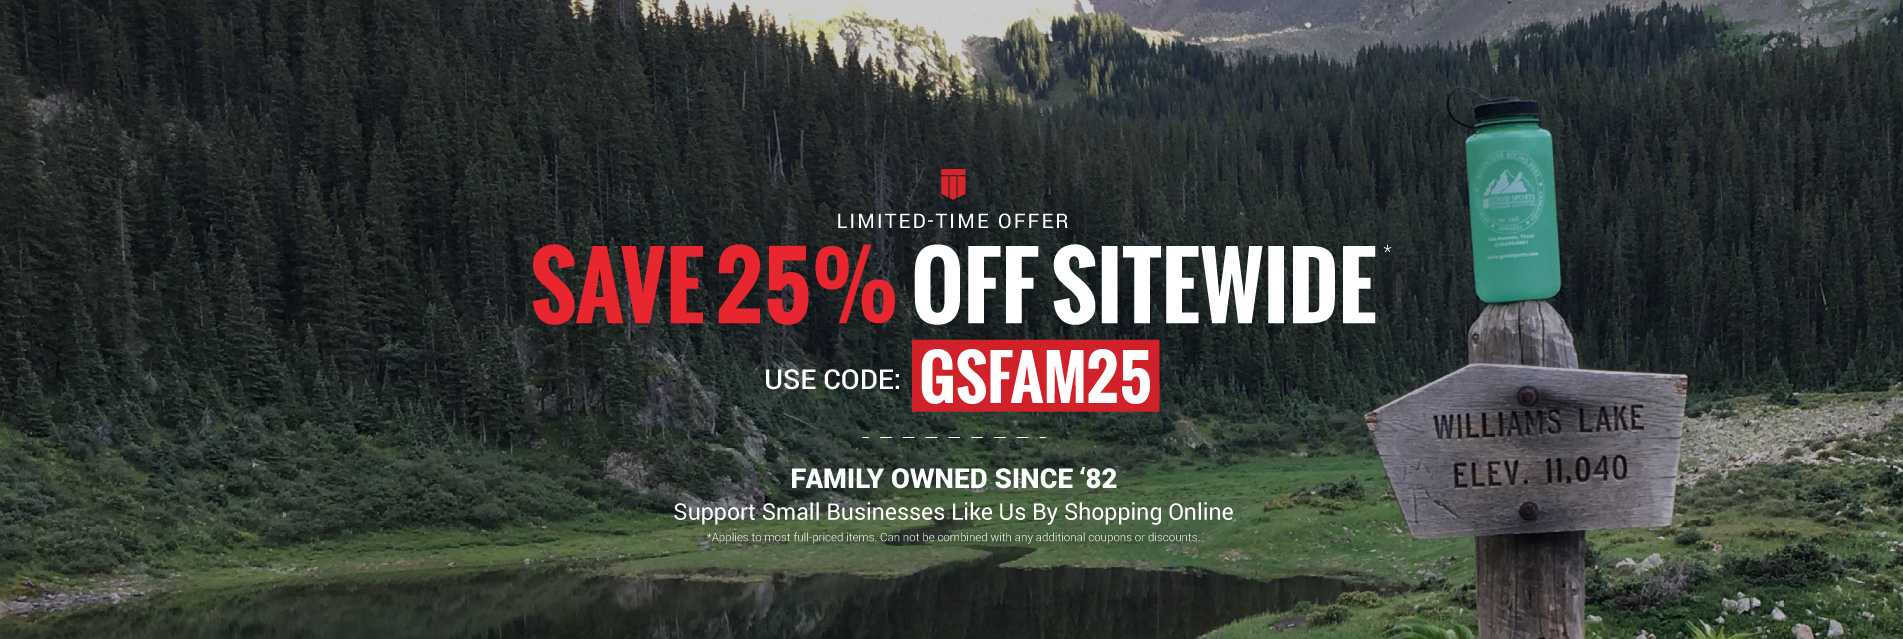 Save 25% Sitewide on most full priced items with code GSFAM25